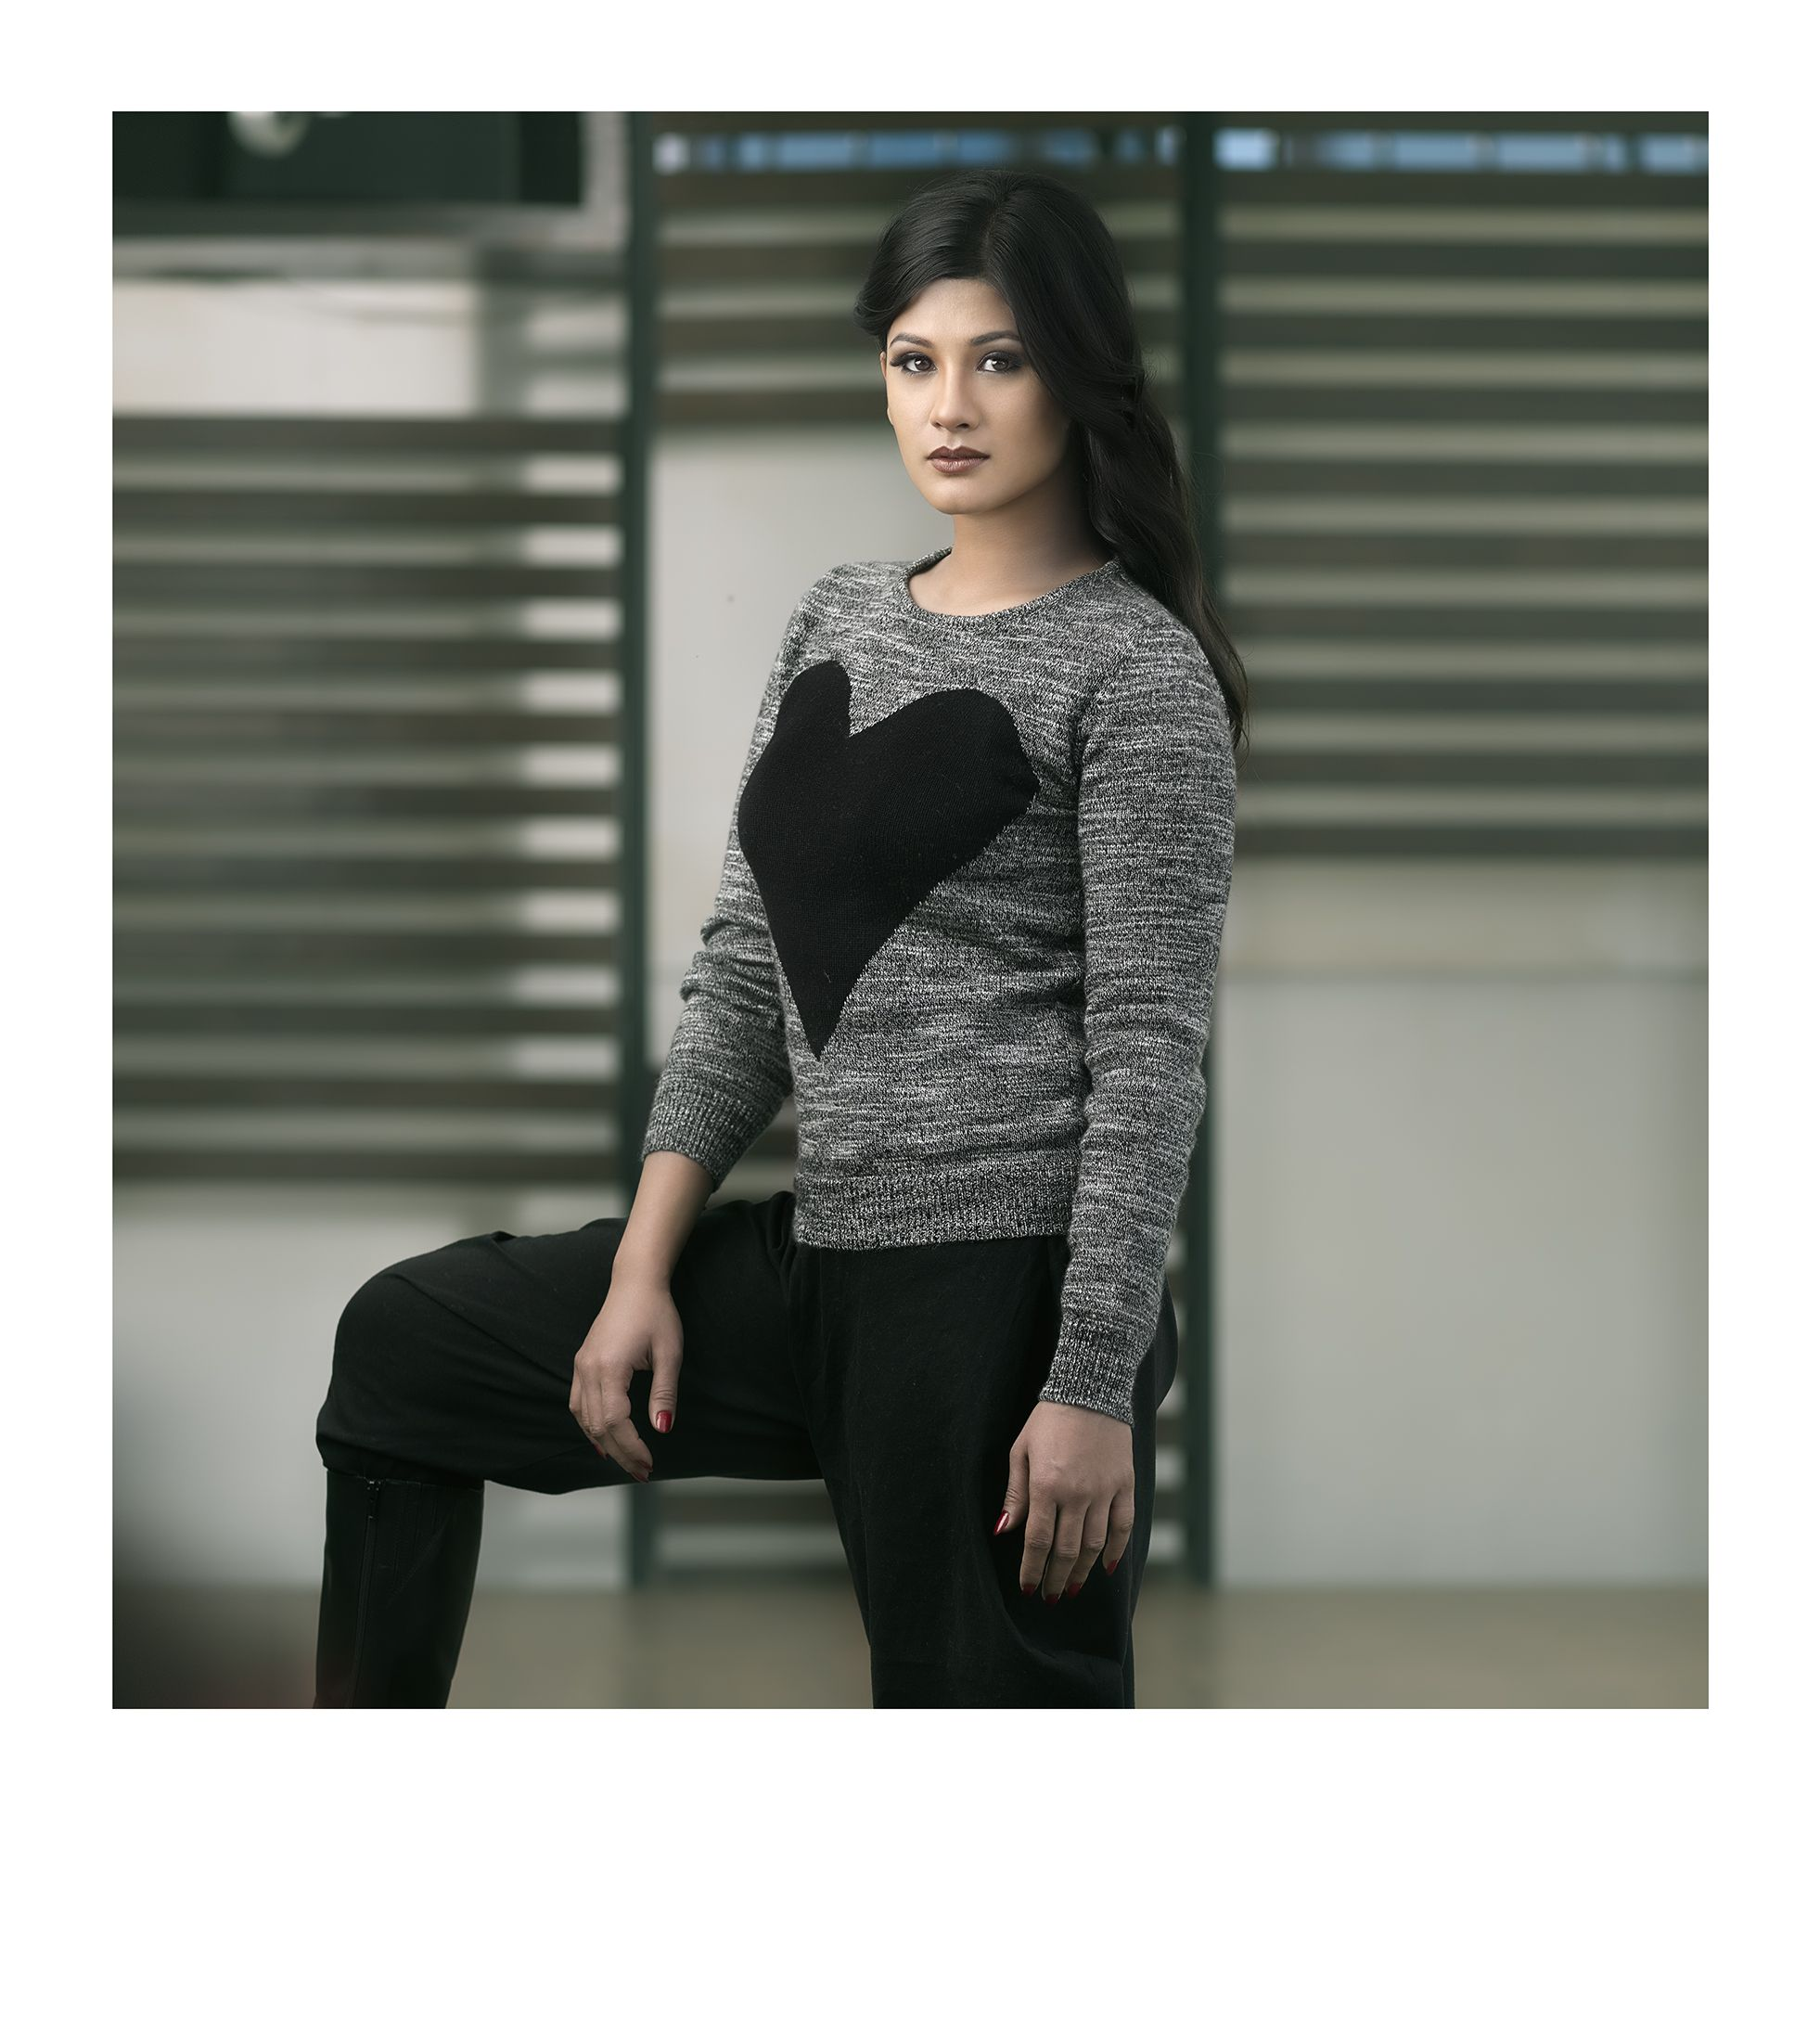 Ariana  - 100% Cashmere - Big Heart Sweater. Available in multiple colors.